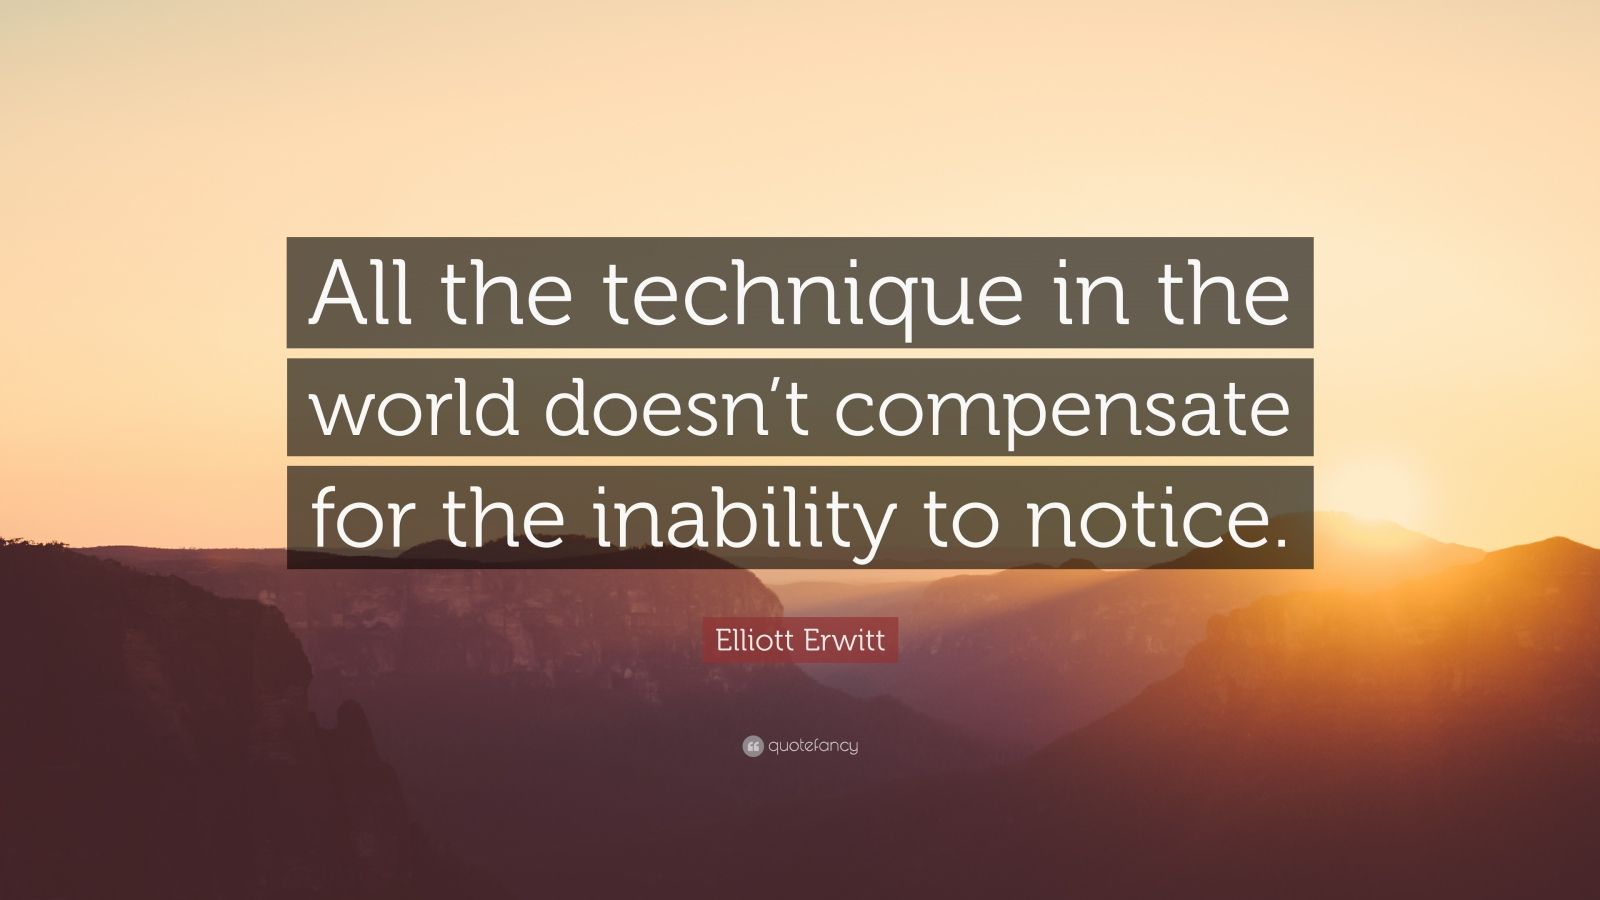 """Elliott Erwitt Quote: """"All the technique in the world doesn't compensate for the inability to notice."""""""